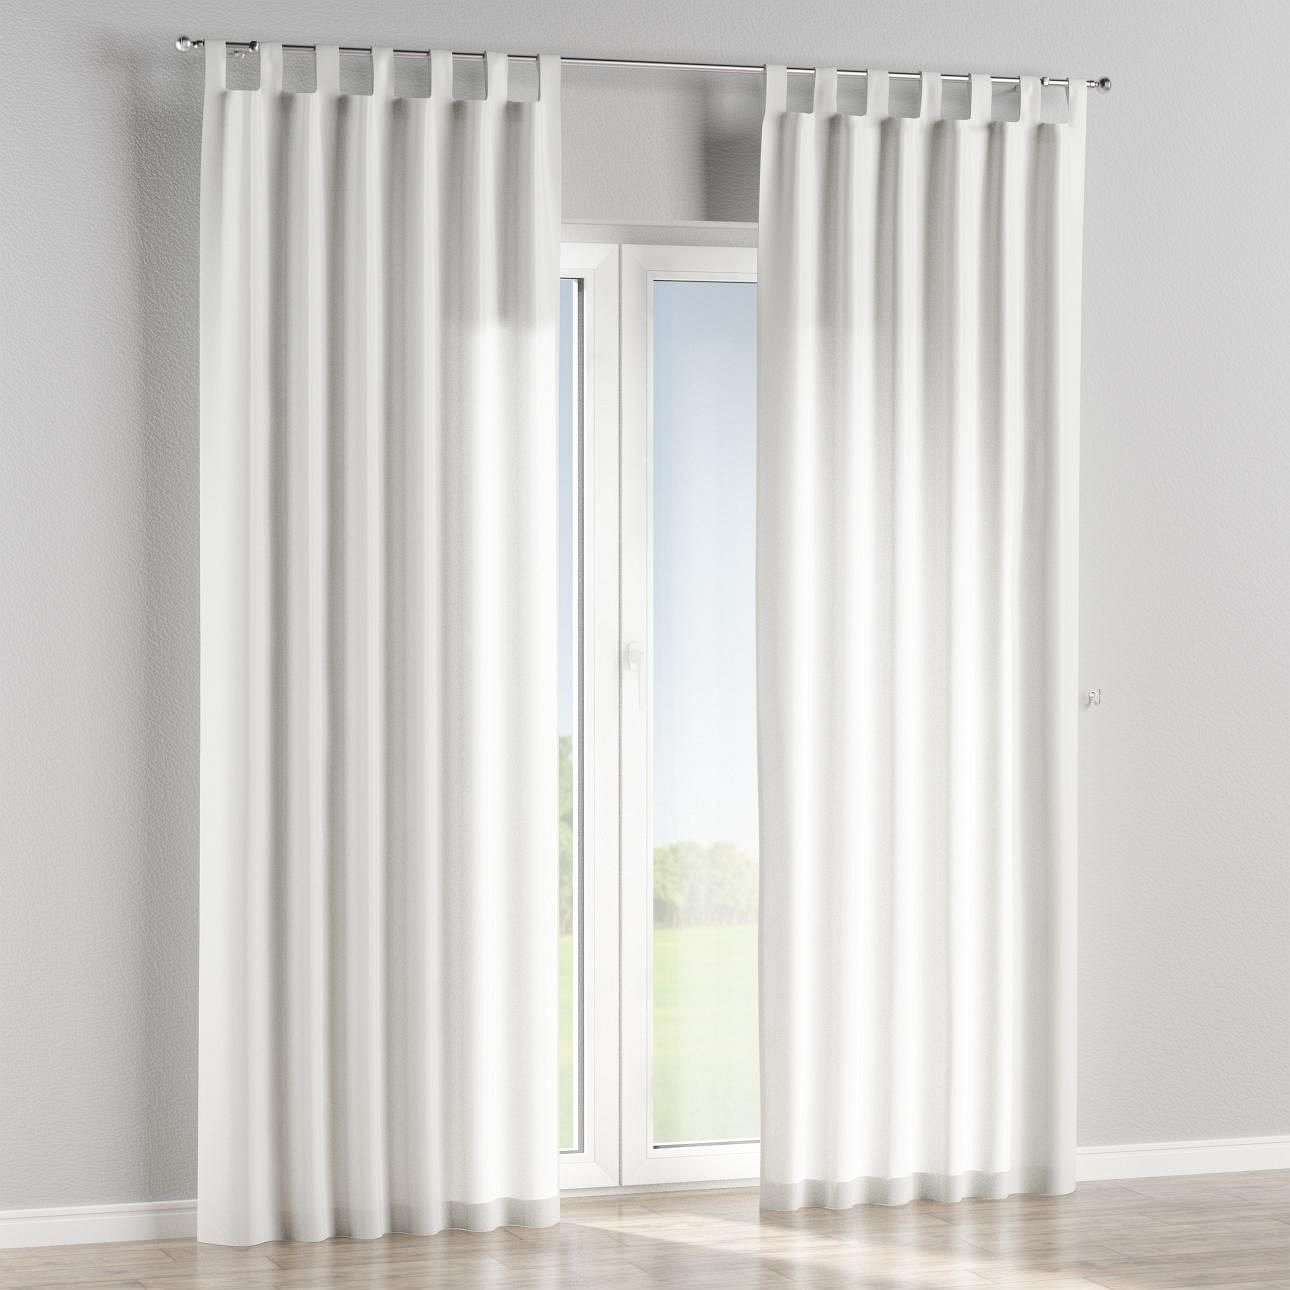 Tab top lined curtains in collection Victoria, fabric: 130-11